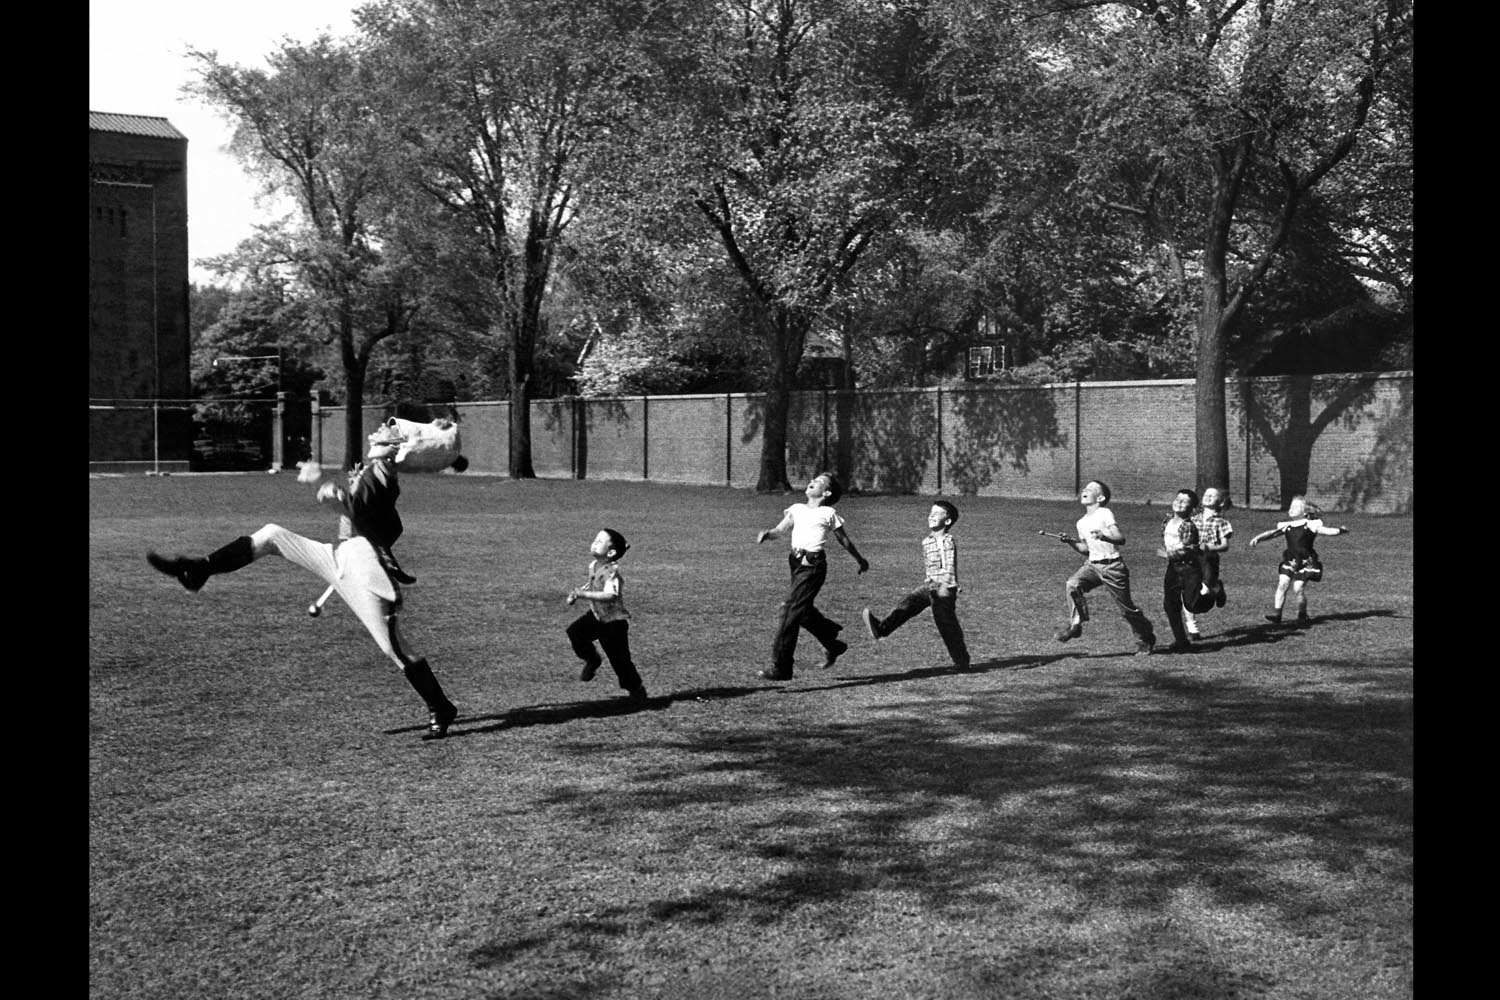 Uniformed drum major for the University of Michigan marching band practicing his high-kicking prance as he leads a line of seven admiring children who are all trying to imitate his flamboyant technique while marching across the campus lawn, 1951.